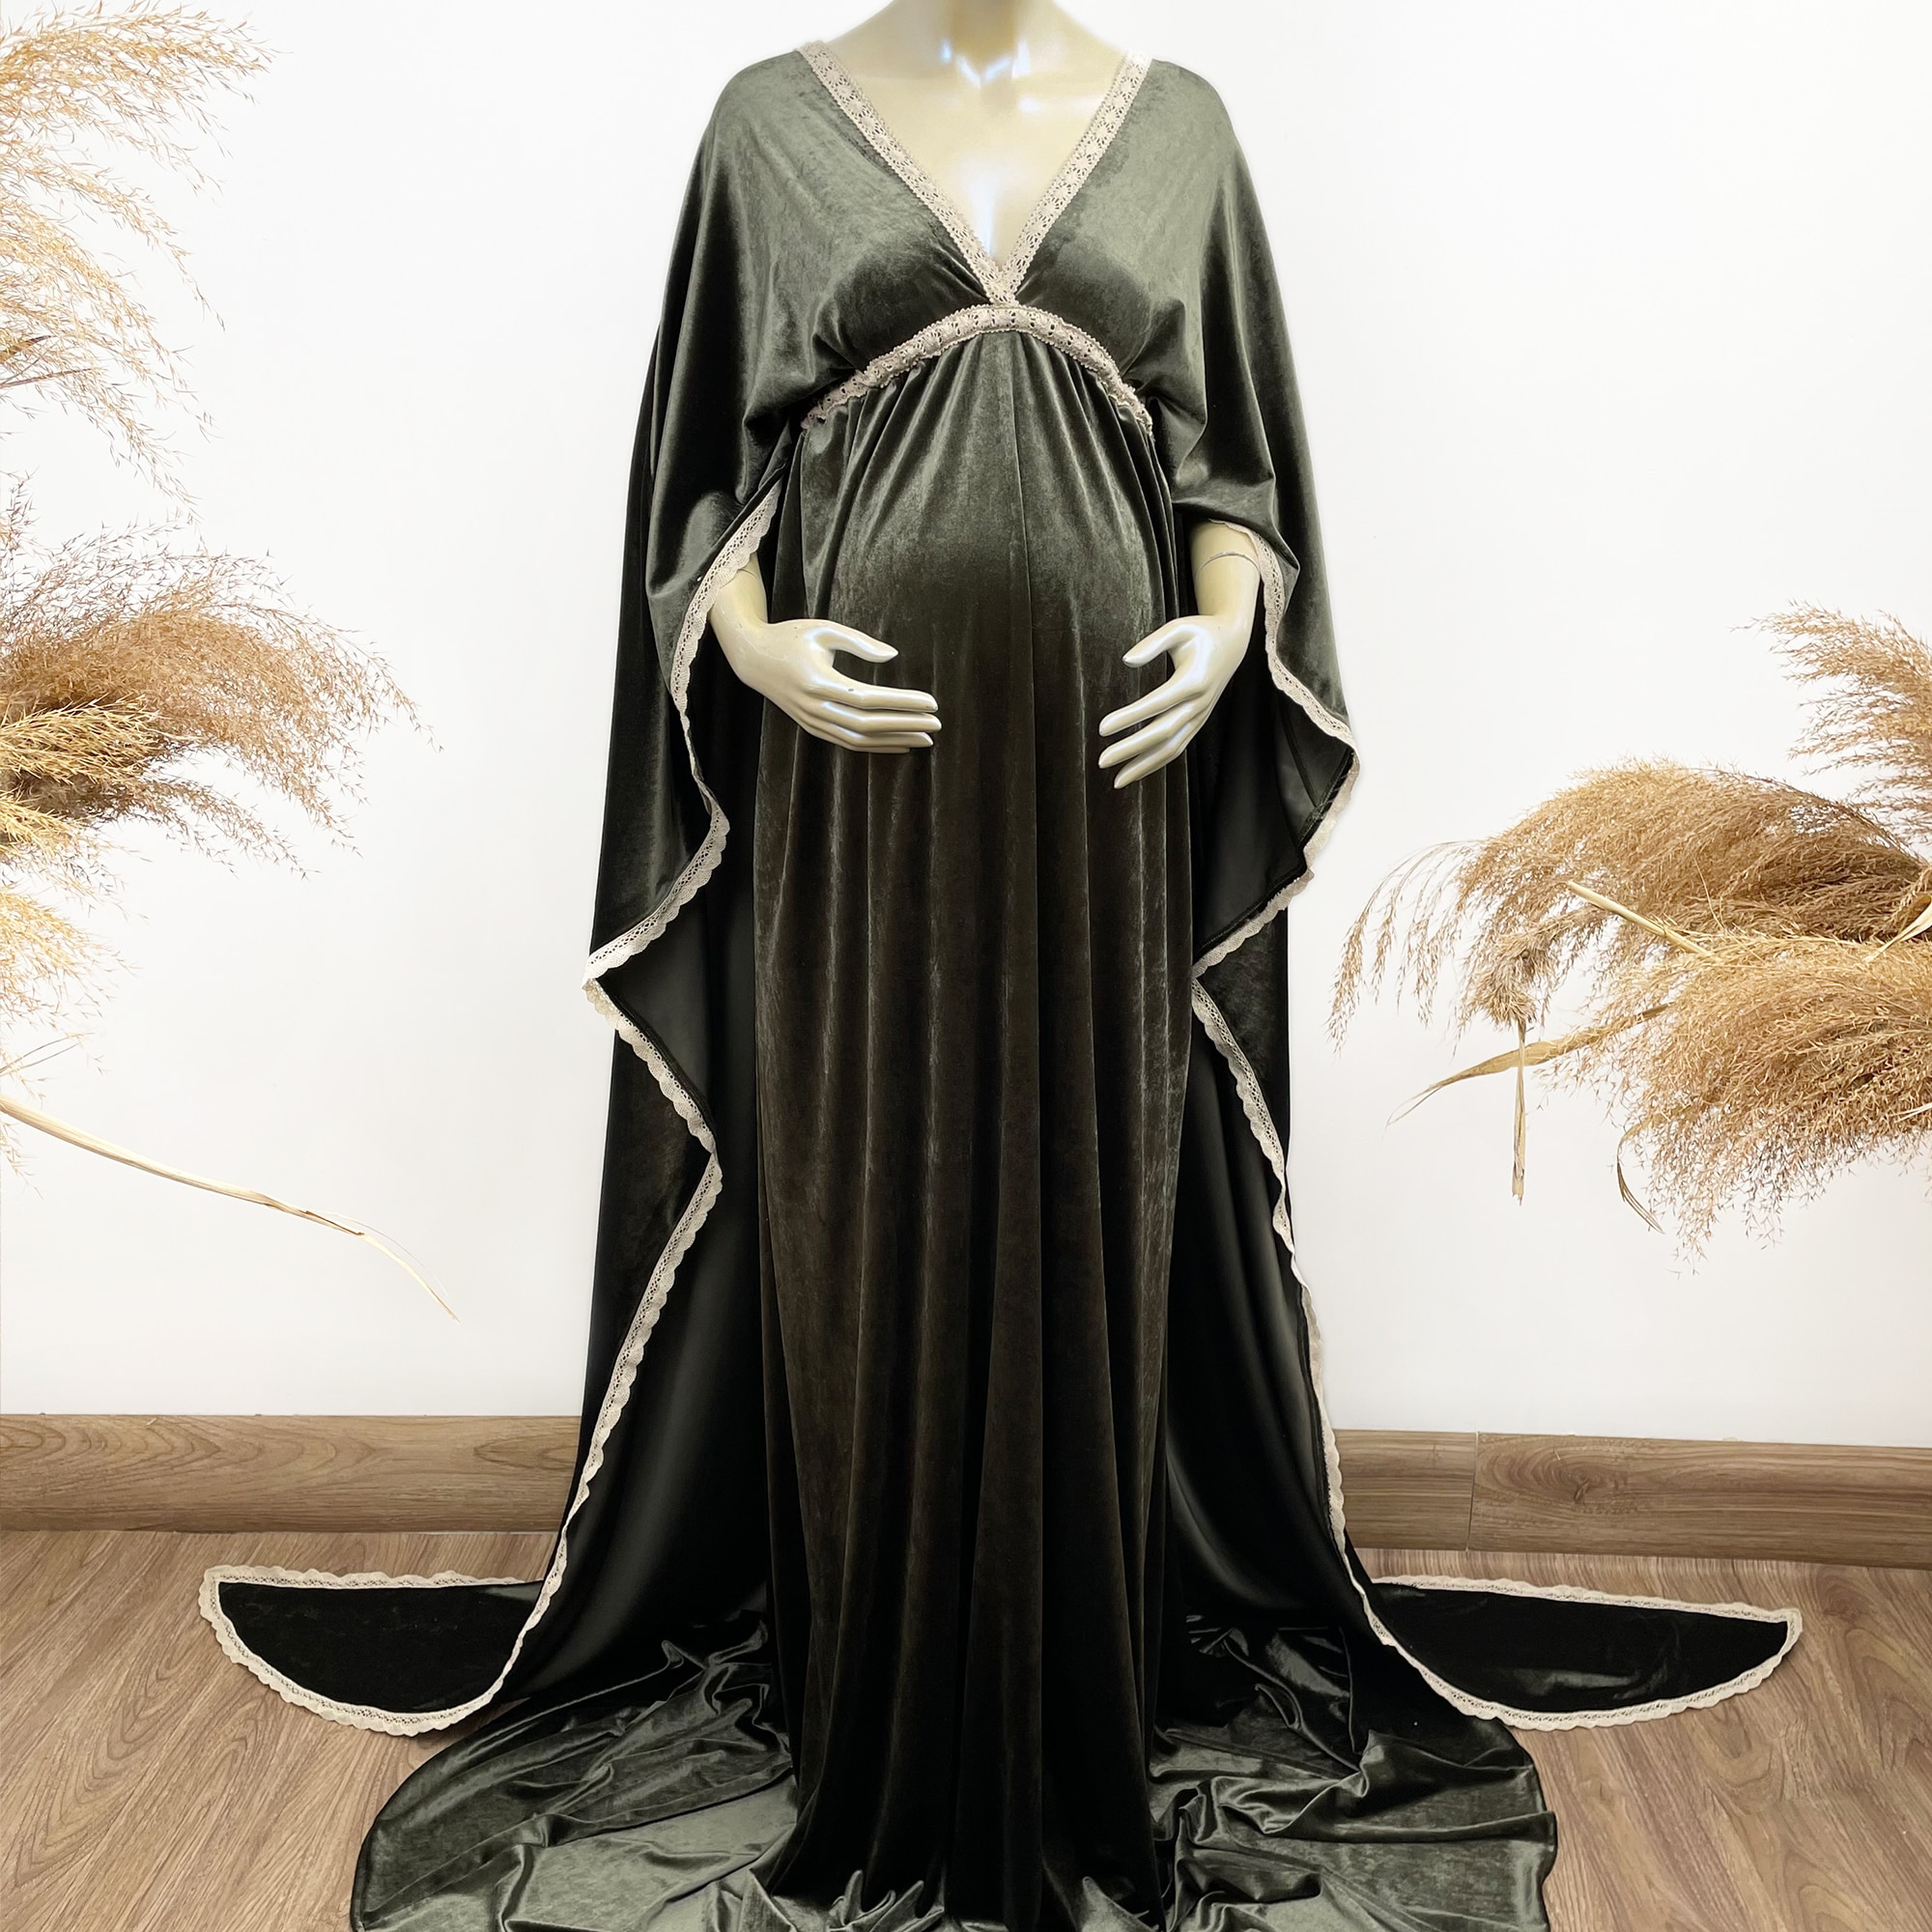 Don&Judy Velvet Maxi Gown Dress with Cape Pregnancy Dress for Photo Shoot Bohemia Long Train Pregnant Women Party Gowns Clothes enlarge